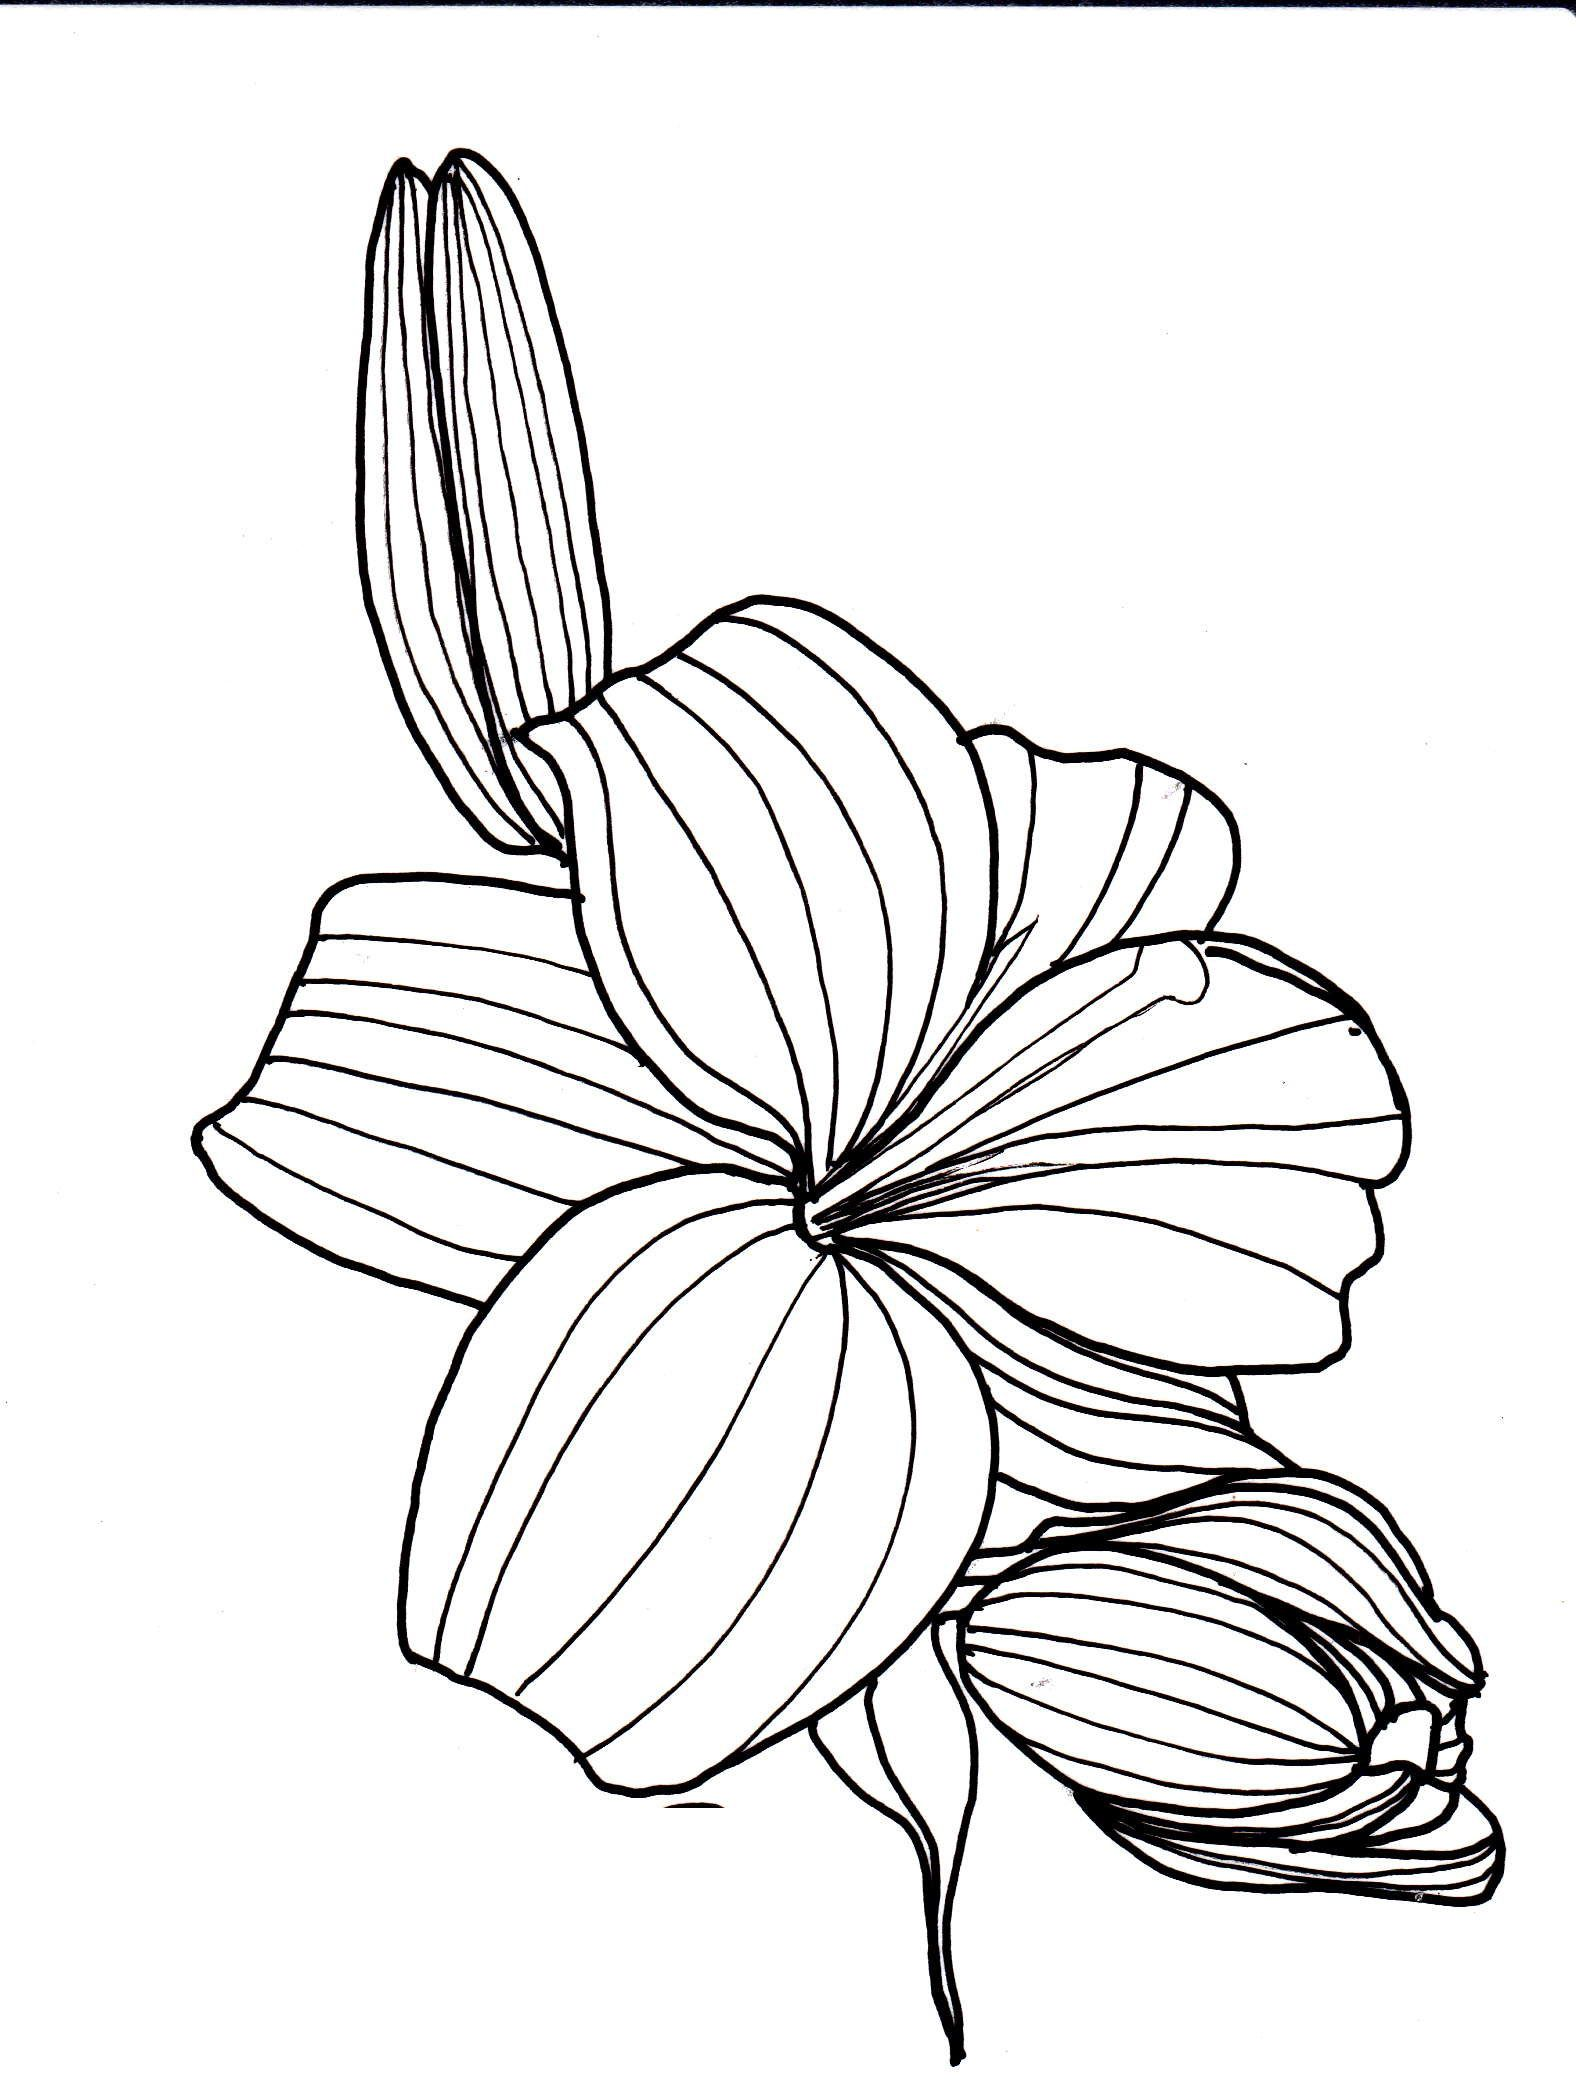 Line drawing flowers lily drawings pinterest flowers line drawing flowers lily izmirmasajfo